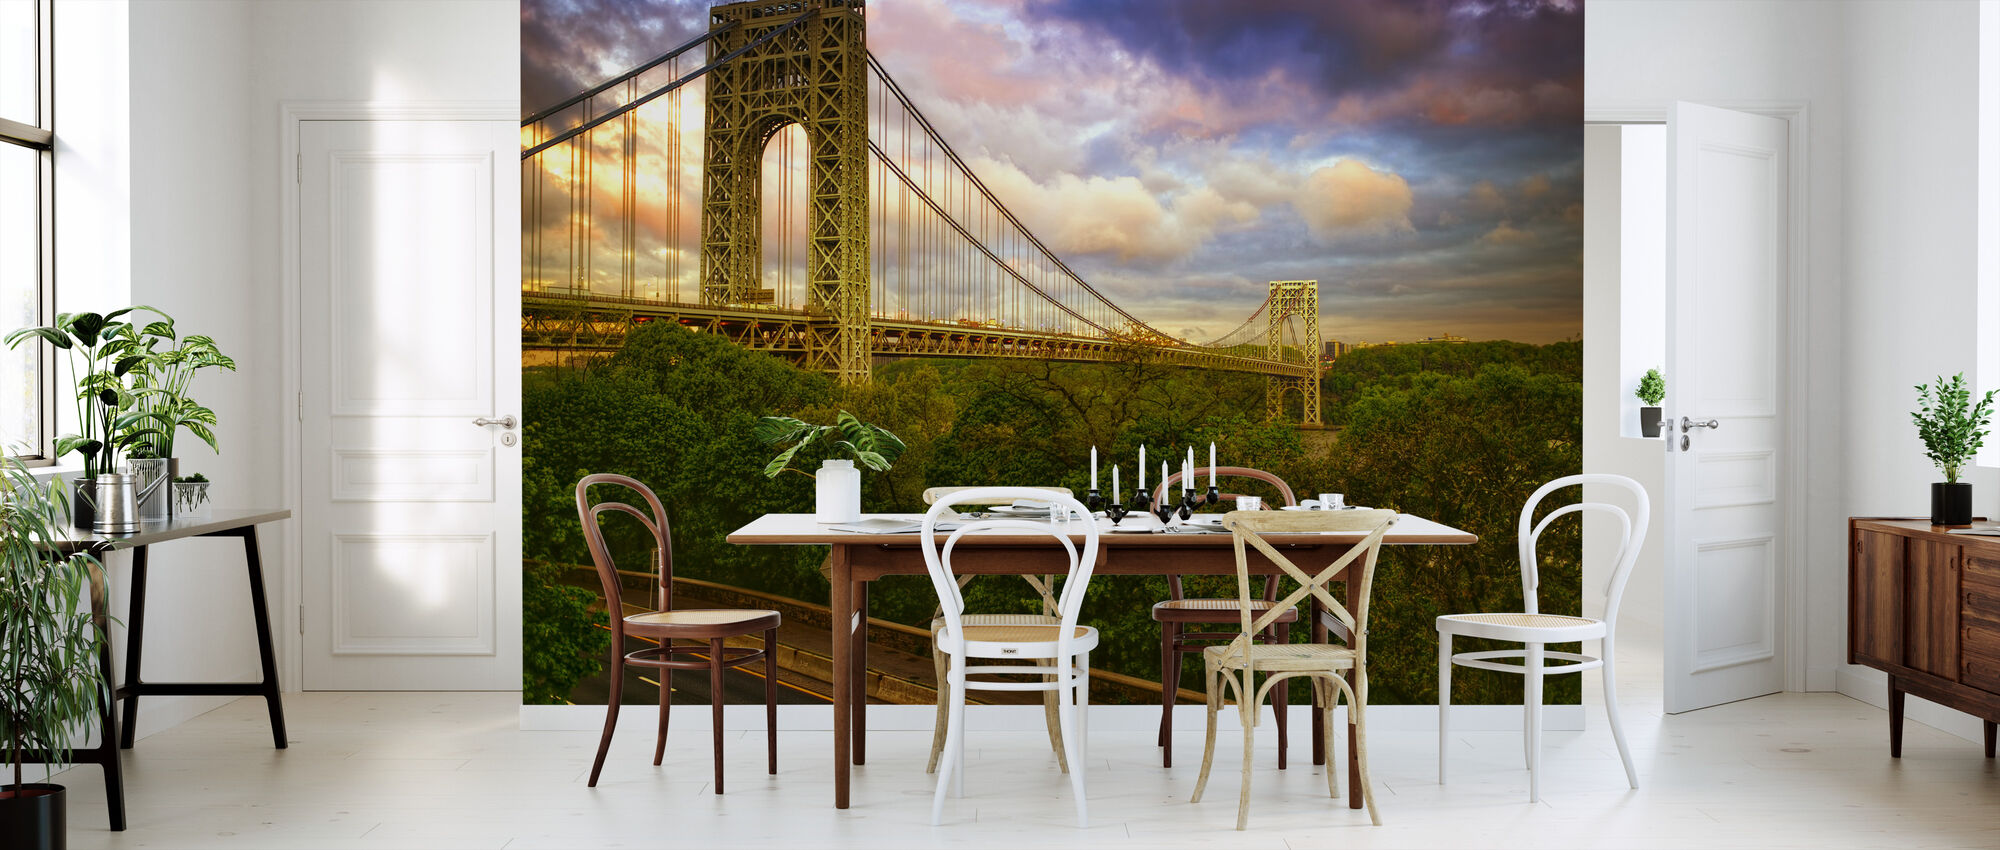 George Washington Bridge, New York - Wallpaper - Kitchen